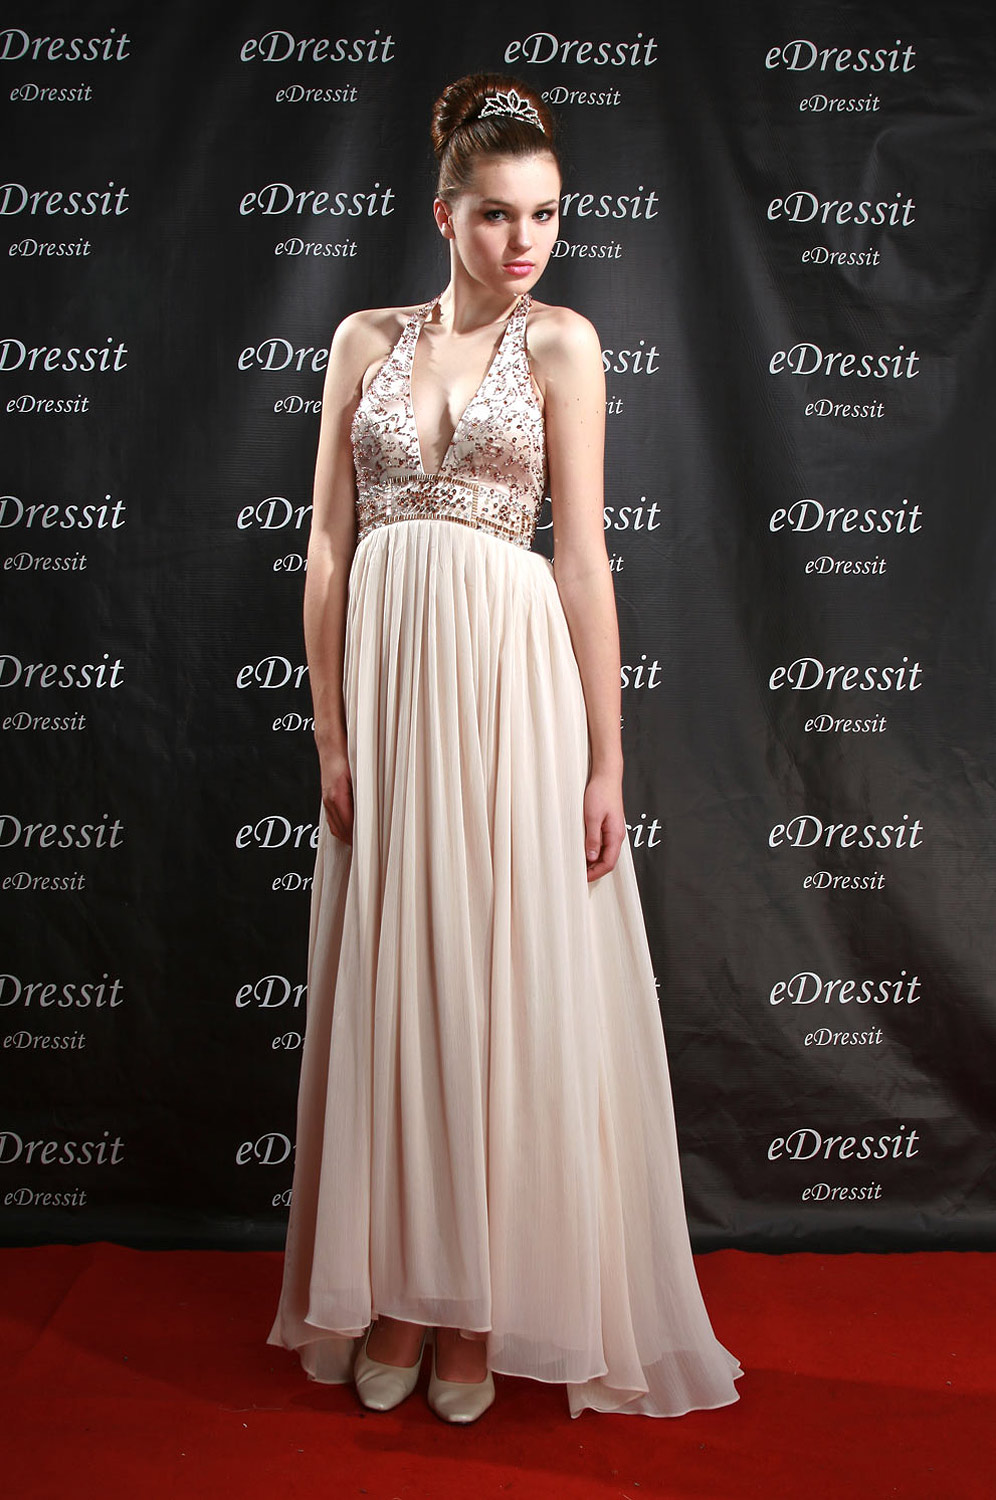 ON SALE!  eDressit Beaded Evening Dress (00773607s)